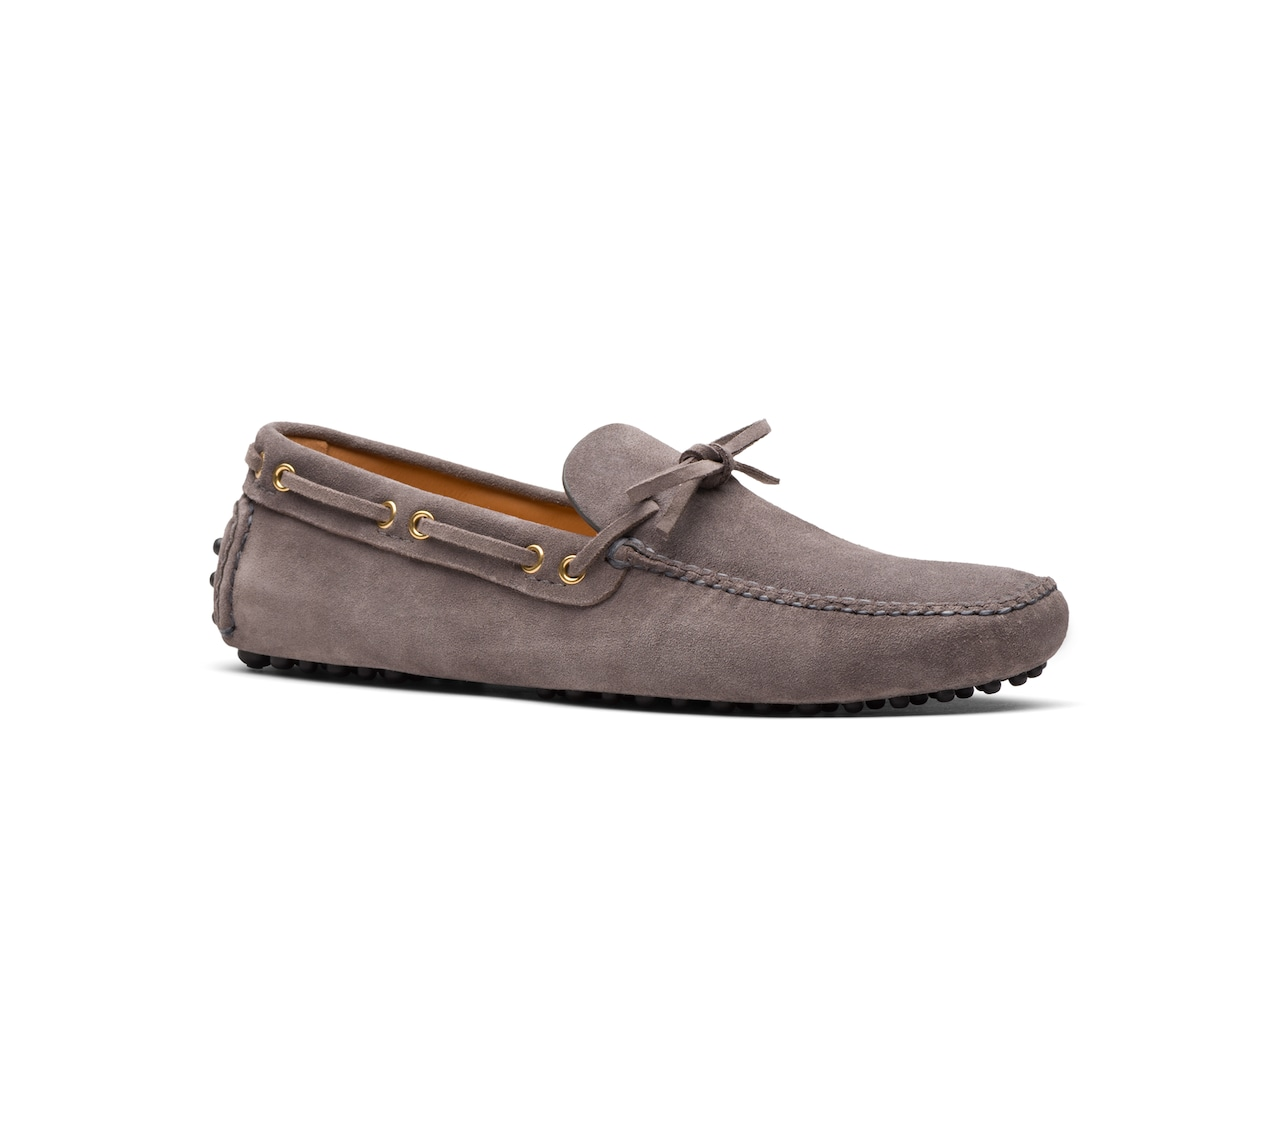 SUEDE DRIVING SHOES GREY